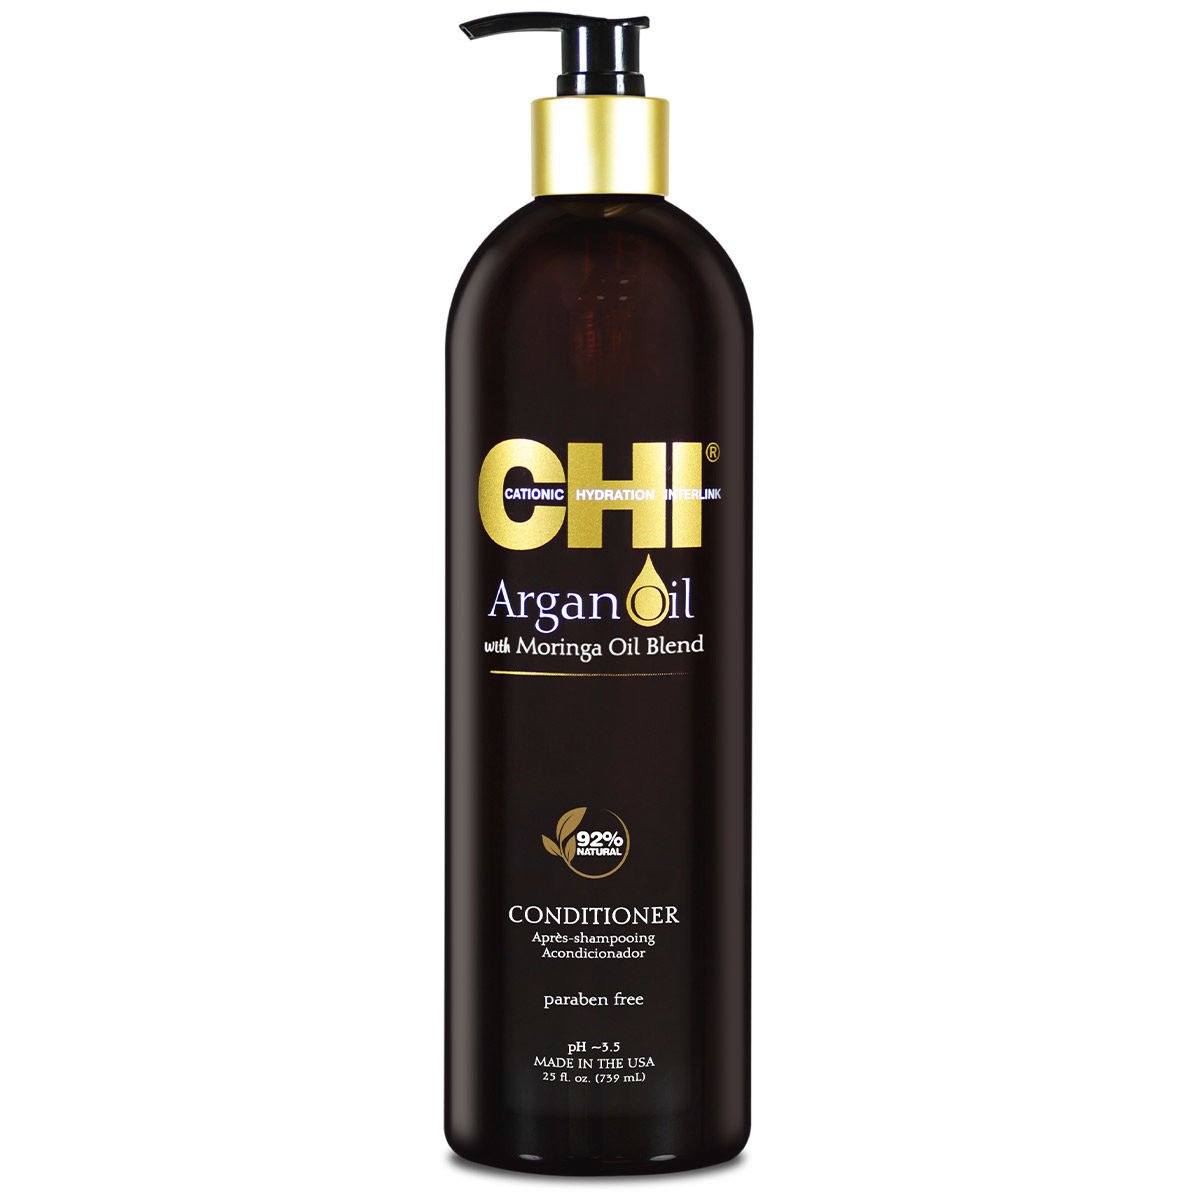 CHI Argan Oil Conditioner 25oz - CHI Argan Oil Haircare